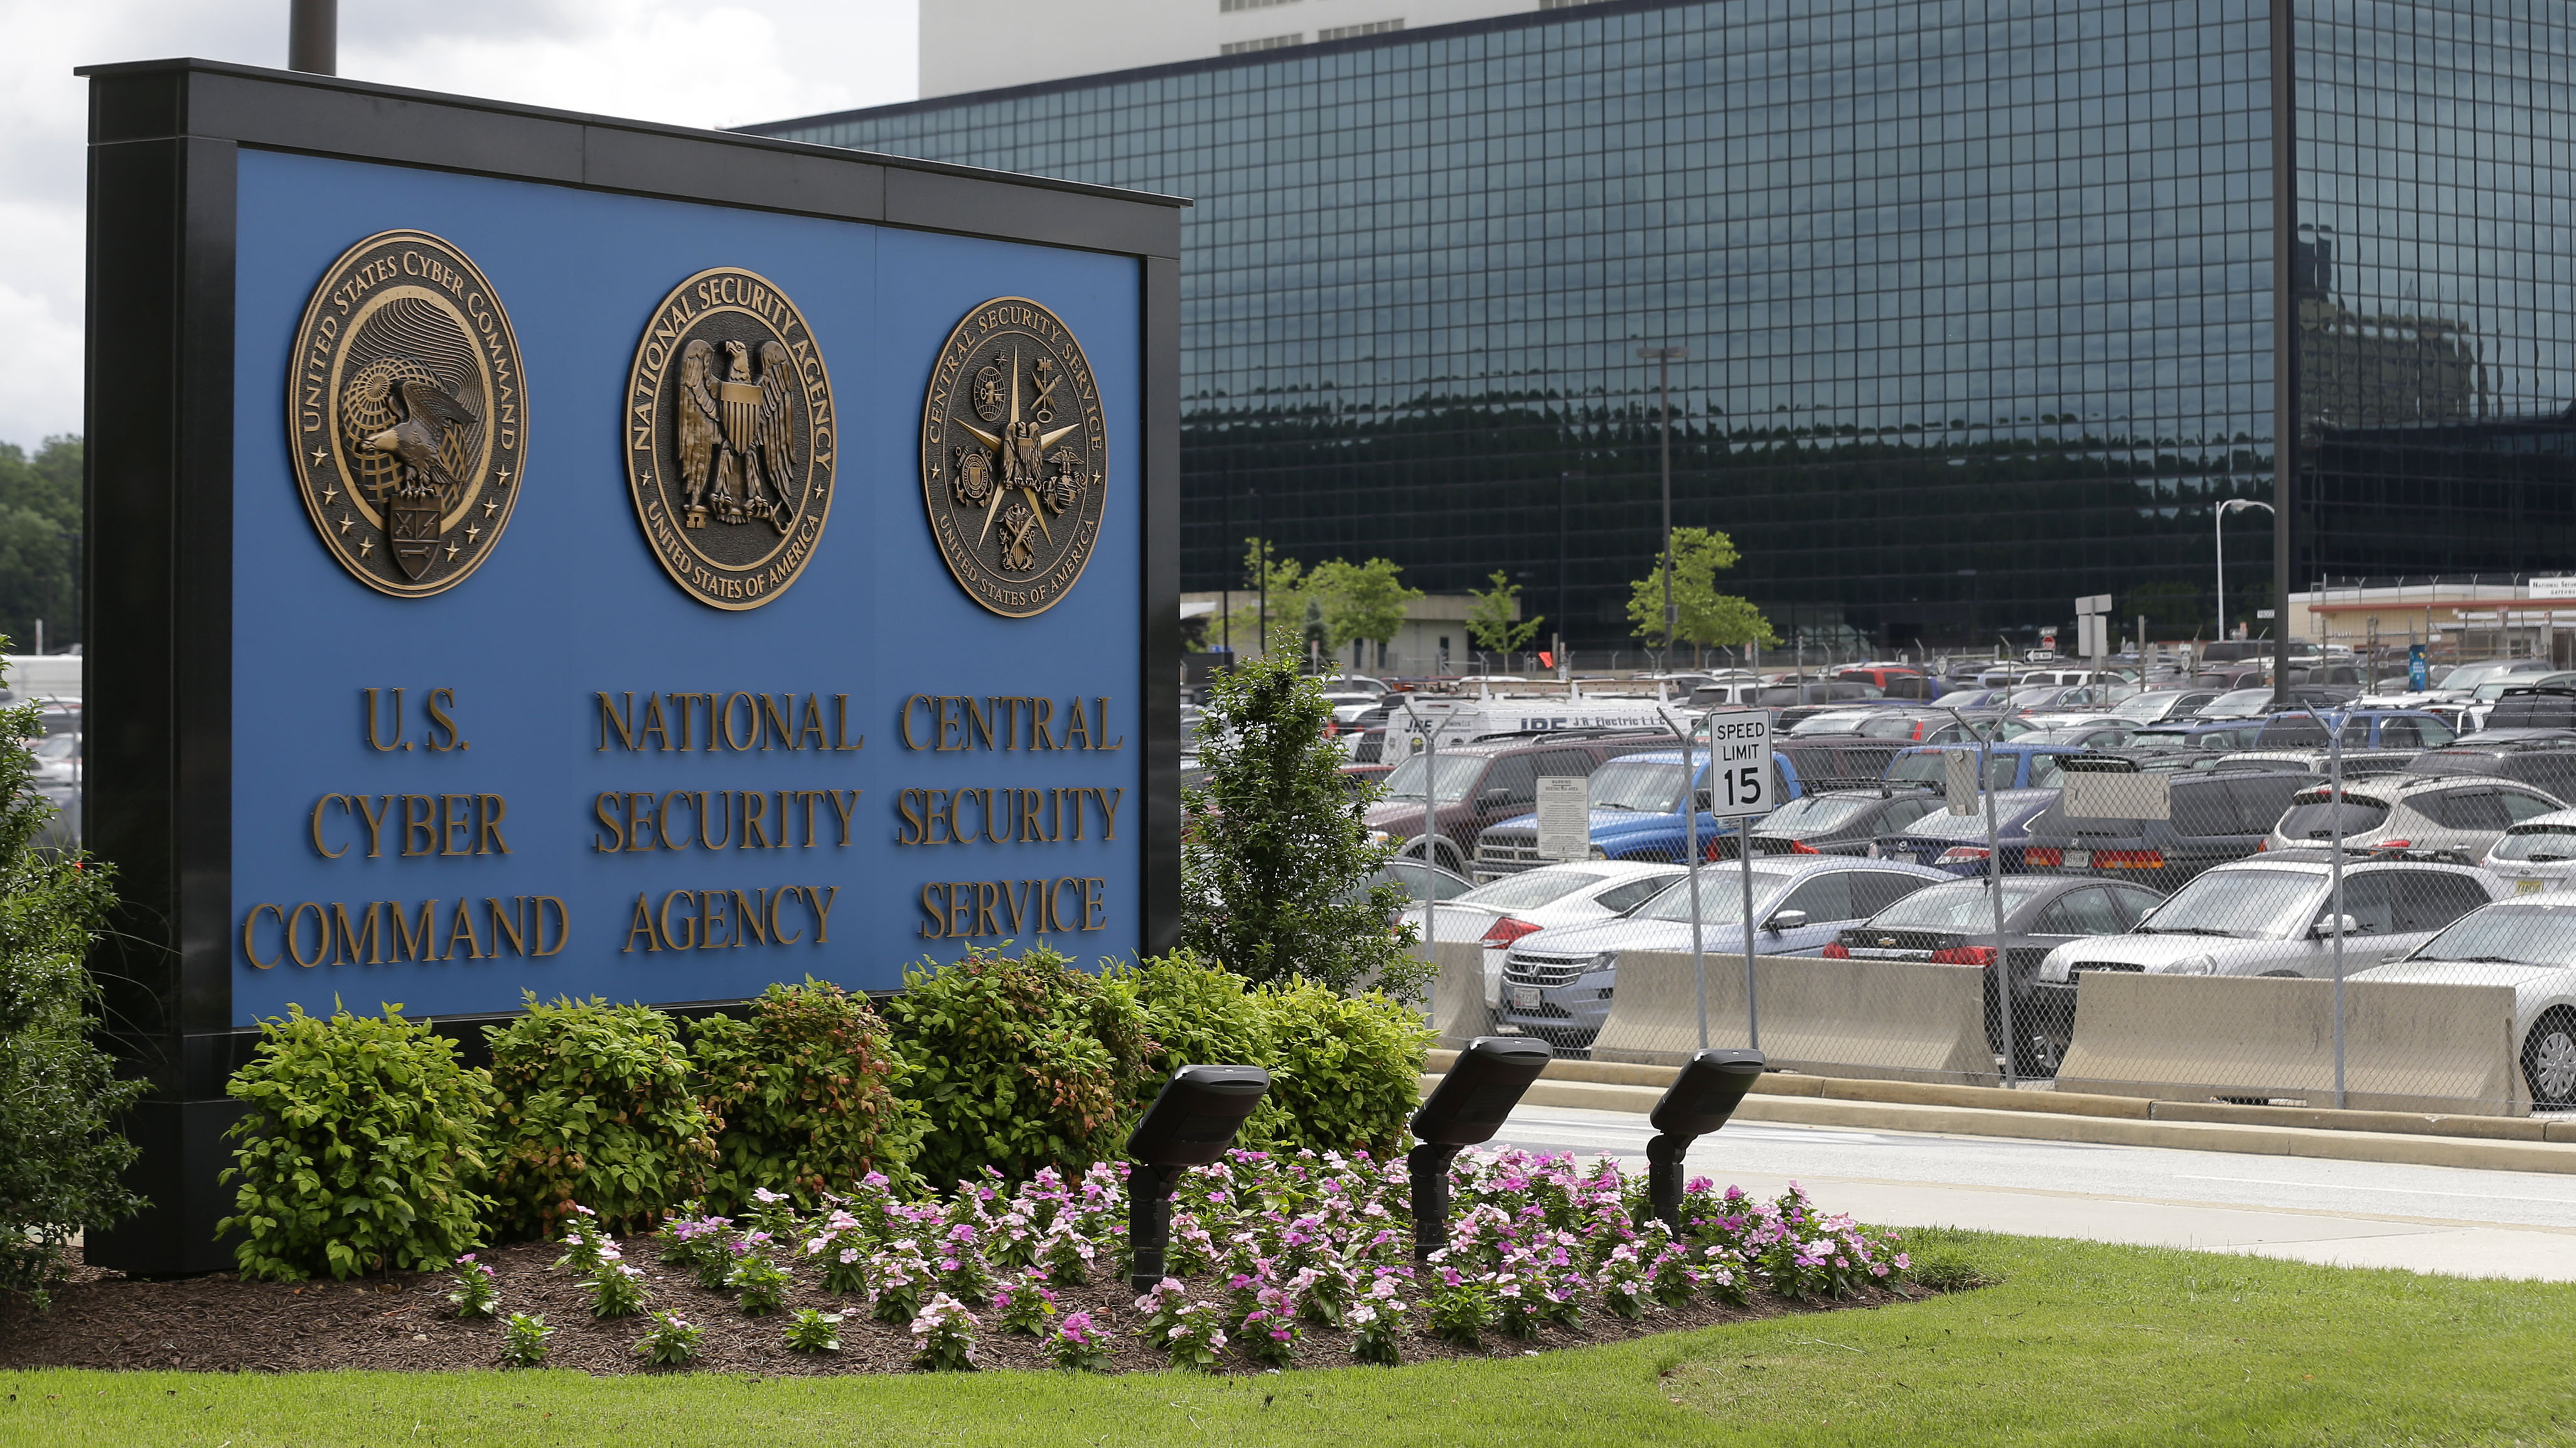 The National Security Administration (NSA) campus in Fort Meade, Md., where the US Cyber Command is located. Acting Homeland Security Adviser Rob Joyce said Monday he would leave the White House to return to the NSA.